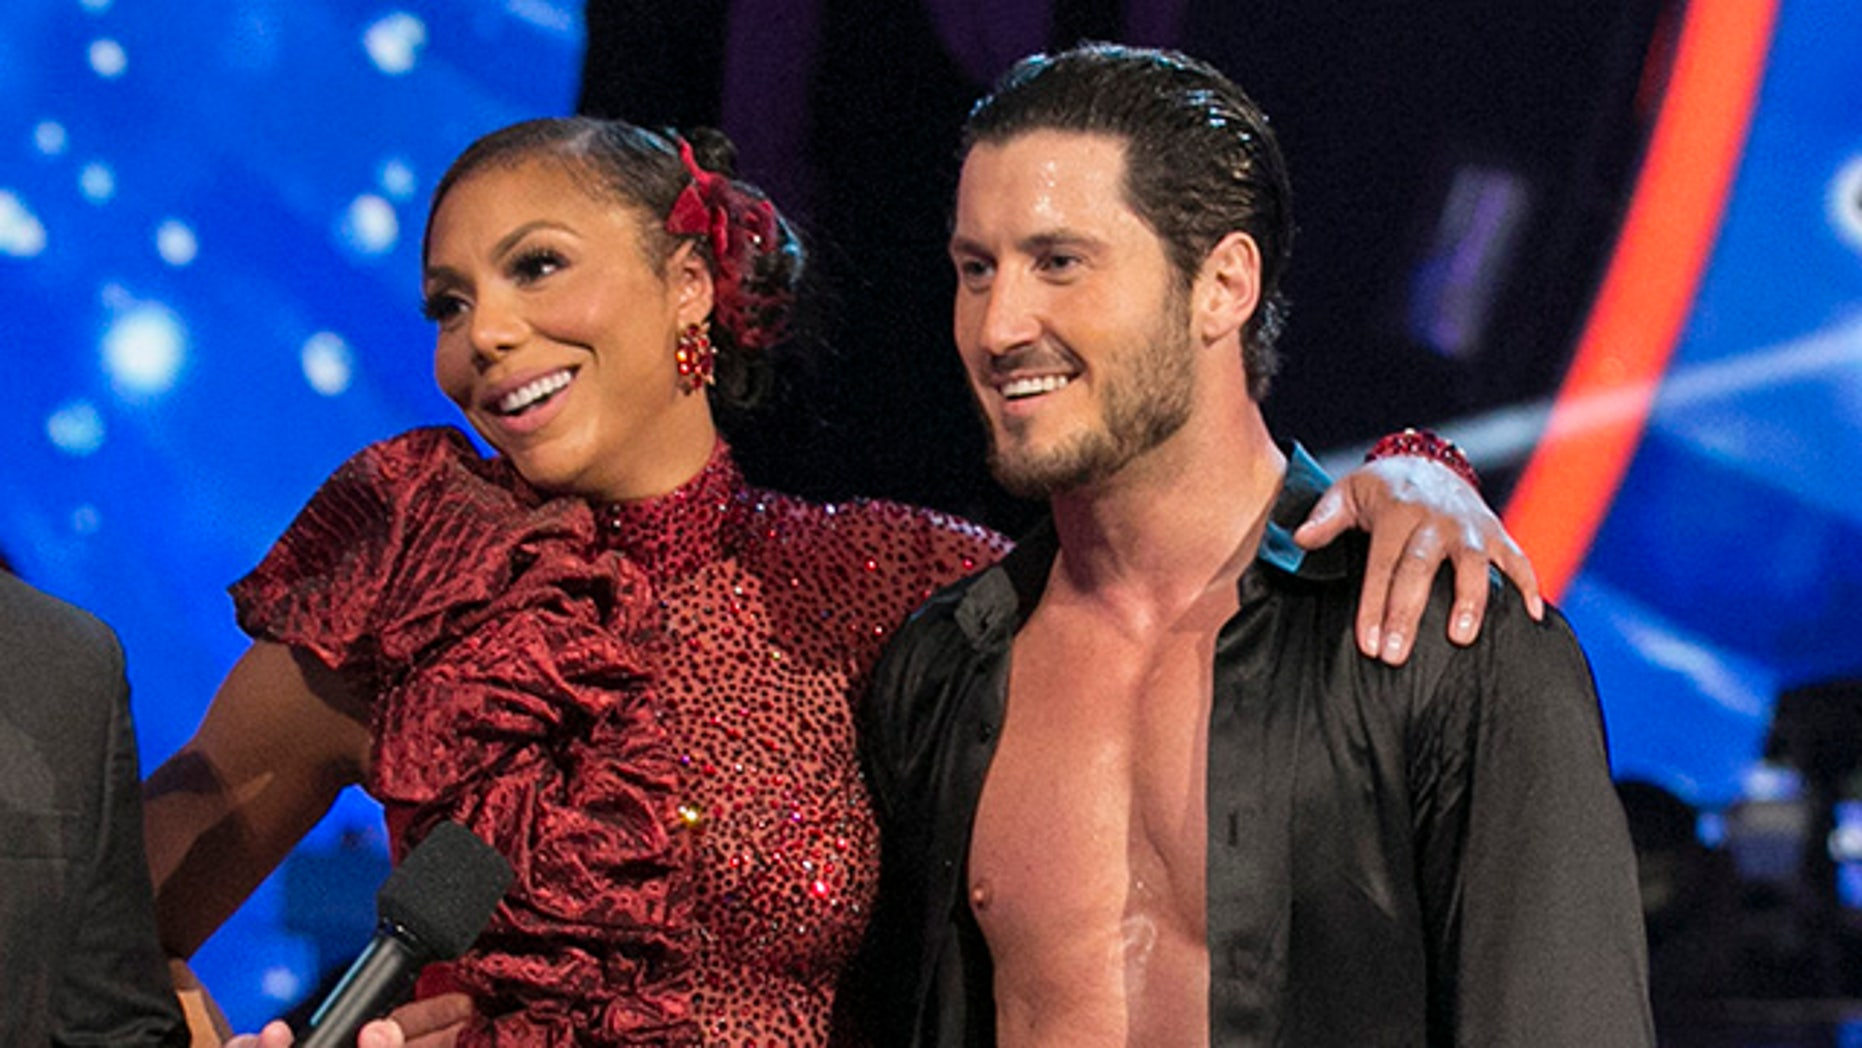 """DANCING WITH THE STARS - """"Episode 2108"""" - The """"Dancing with the Stars"""" celebrities paid tribute to influential figures in their lives on MONDAY, NOVEMBER 2 (8:00-10:01 p.m., ET). The dance styles included Argentine Tango, Foxtrot, Contemporary, Salsa, Paso Doble and the Viennese Waltz. For the first time this season, the couple with the highest score from their solo dance was be granted immunity from elimination next week and also received 3 additional points. For the first time ever, each of the six couples that did not receive immunity were then paired up to compete in a head-to-head dance-off to be voted on by America in real-time on www.ABC.com and the three judges. The couple with the majority of the four potential votes from each dance-off earned an extra 2 points, increasing their overall score.  At the end of the night, one couple faced elimination. (Photo by Adam Taylor/ABC via Getty Images)"""